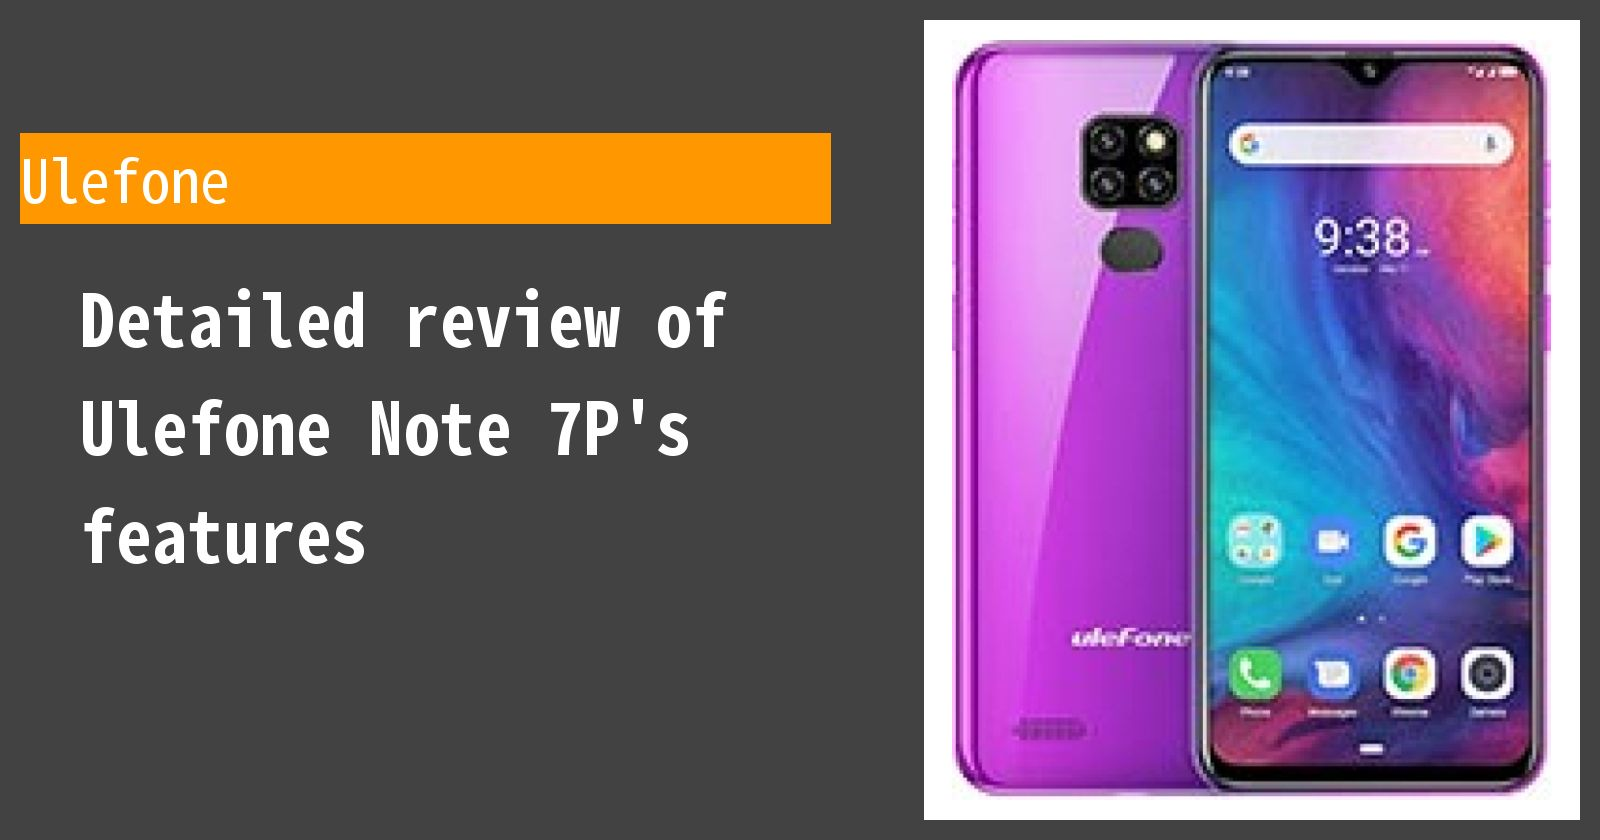 Detailed review of Ulefone Note 7P's features